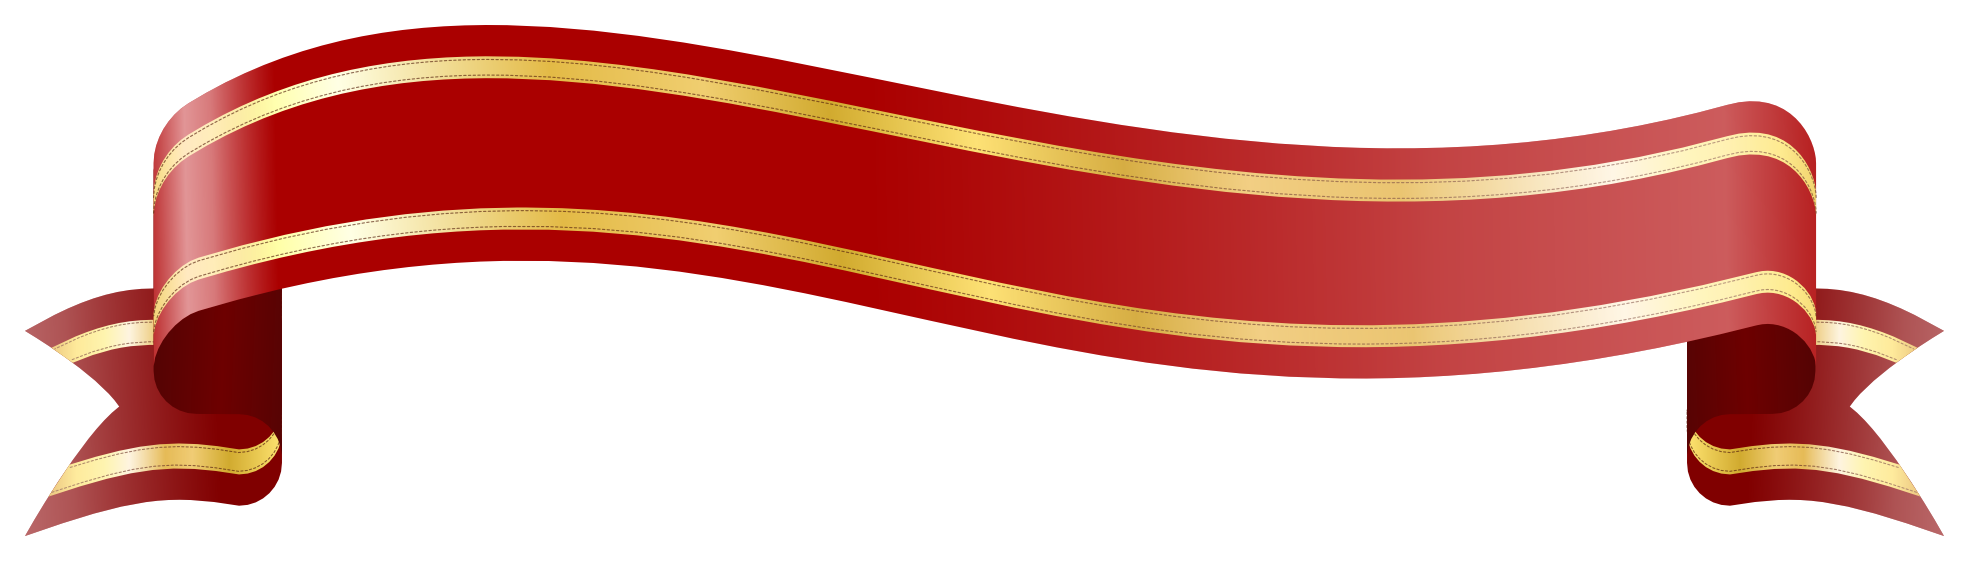 1969x561 Ribbon Png Images, Red Gift Ribbon, Free Download Pictures